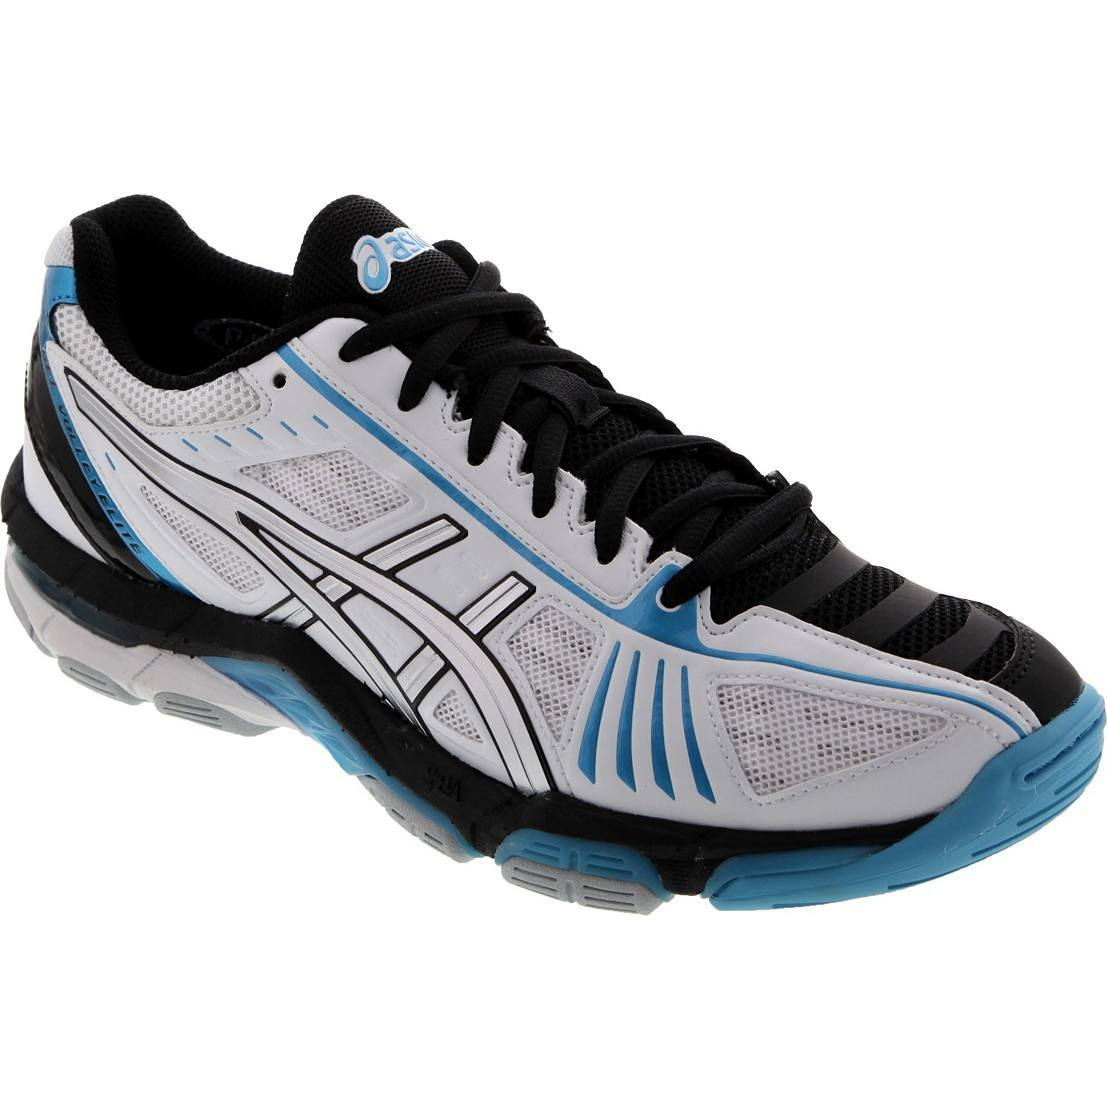 Asics Gel Volley Elite 2 - White Black Blue